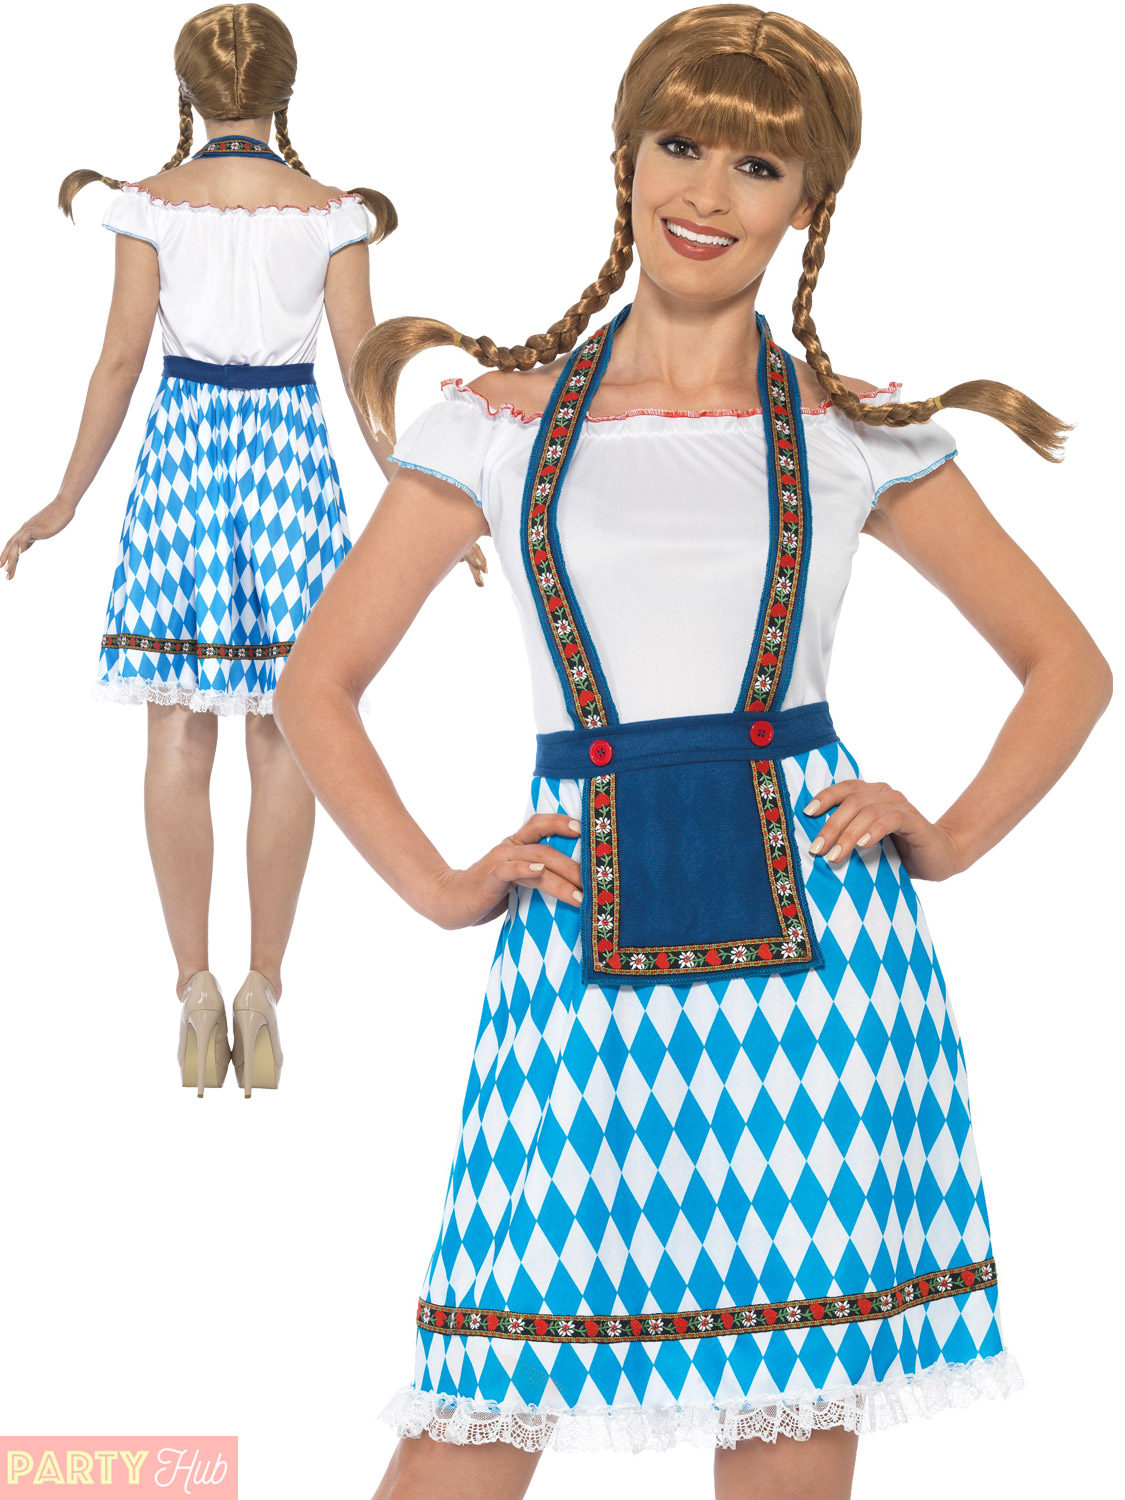 new bavaria women Men's authentic german lederhosen costume for sale at discount price by ernst licht visit us now and grab it yourself oktoberfest lederhosen costume in different colors, styles and sizes.